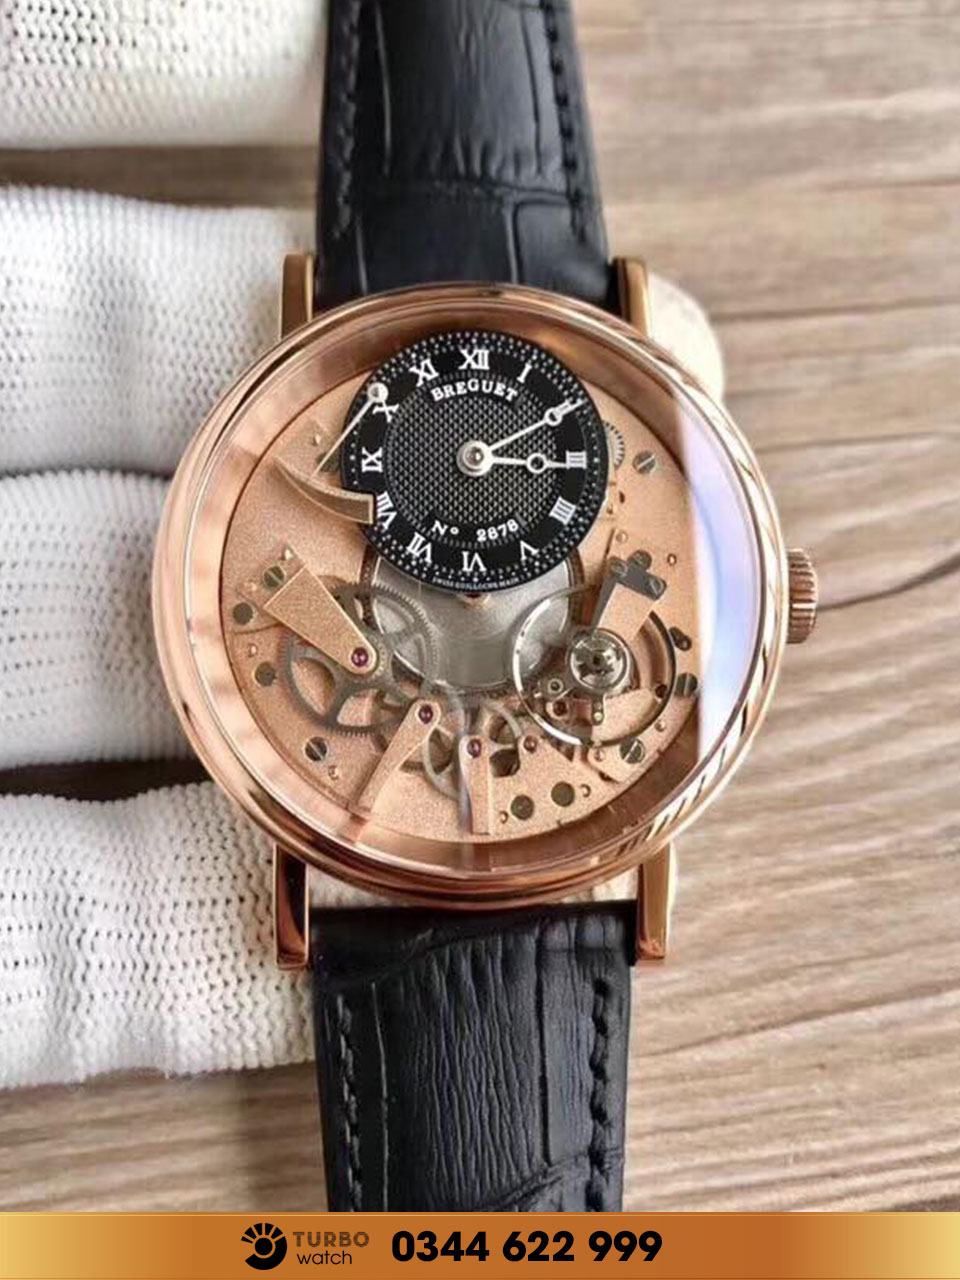 Breguet  Tradition Manual Wind  18K Rose Gold 7057BB/G9/9W6  replica 1-1 cao cấp